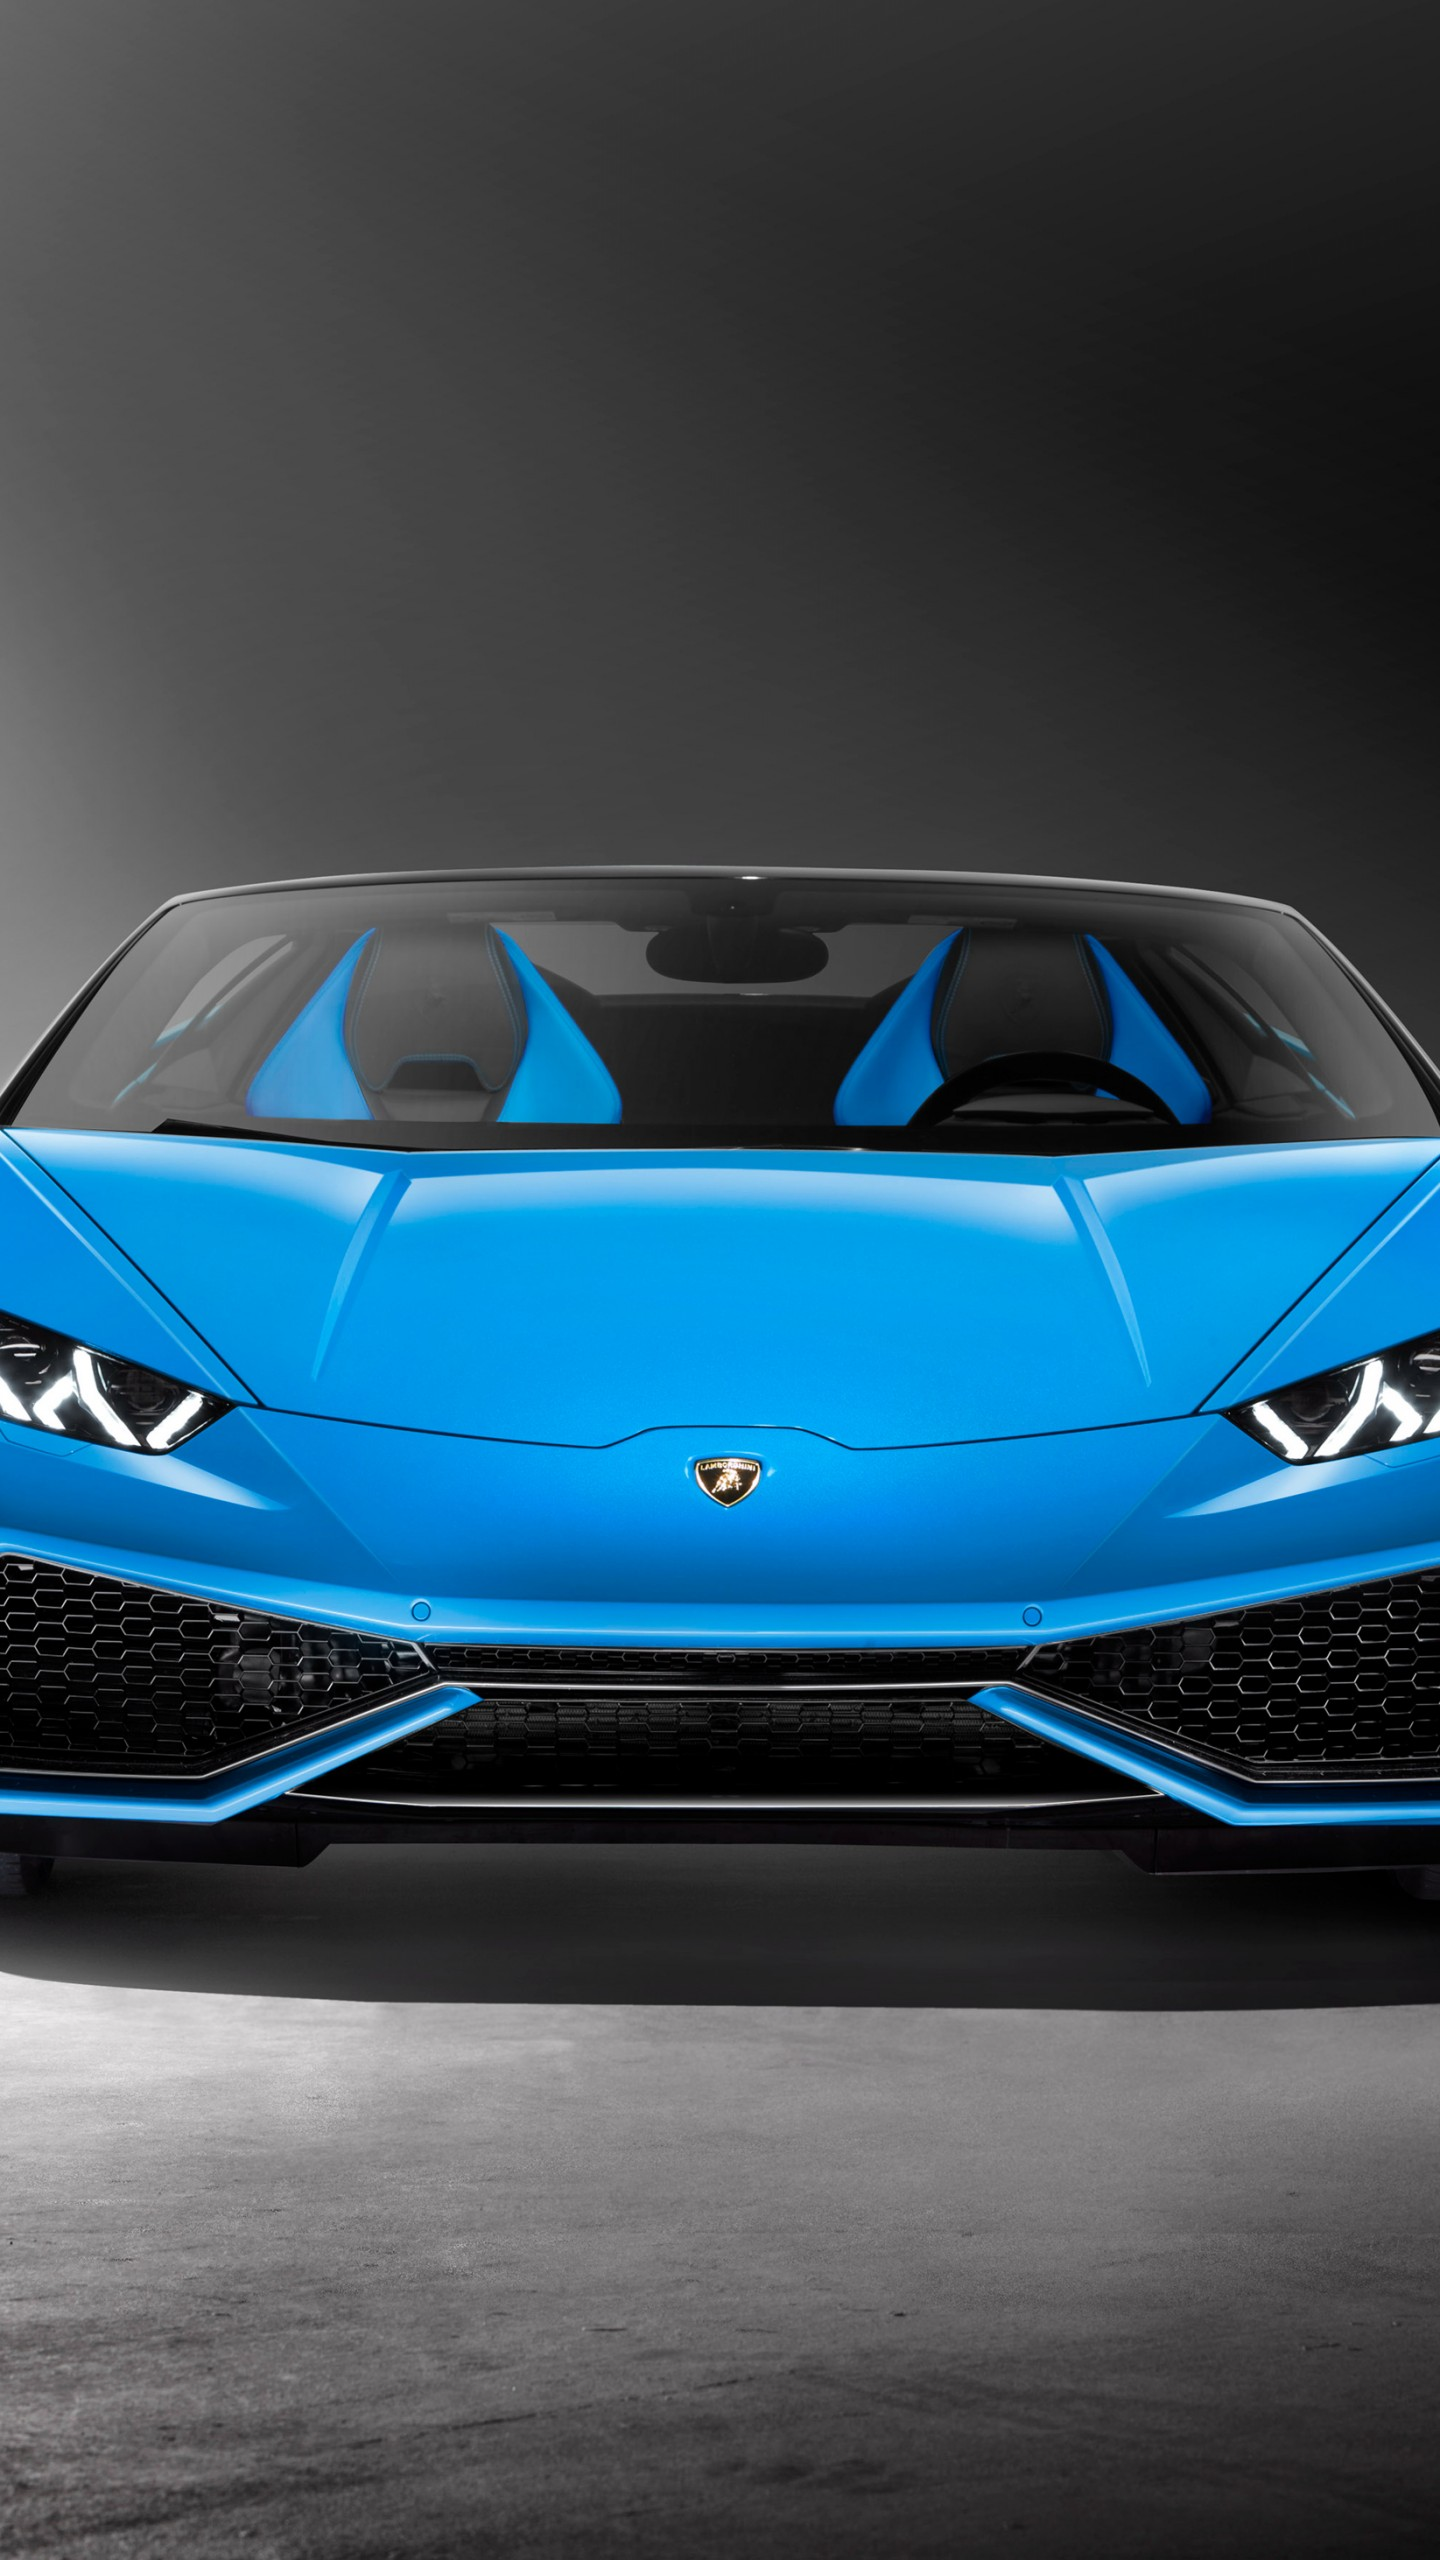 Wallpaper Lamborghini Huracan Lp610 4 Spyder Supercar